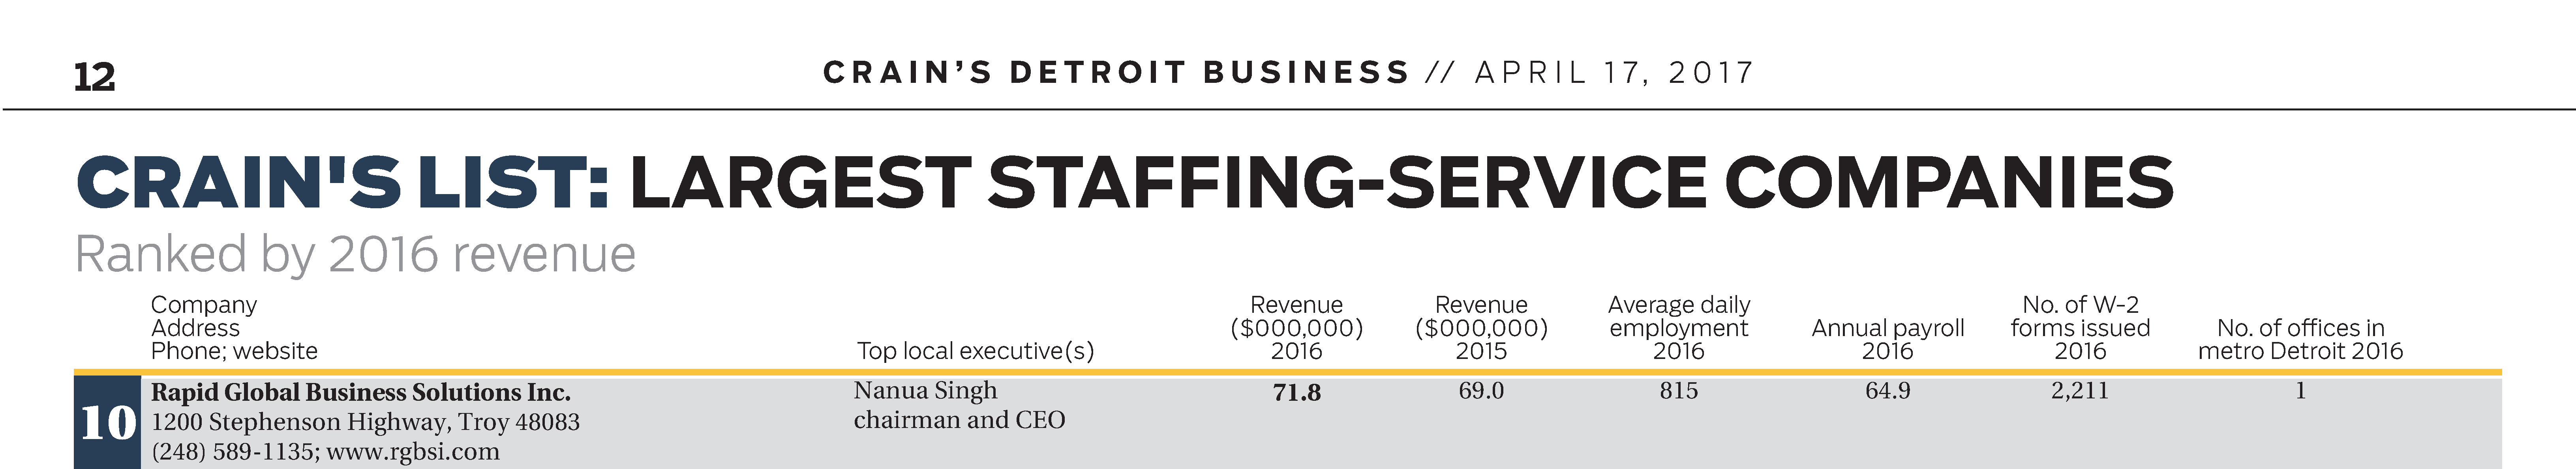 RGBSI 10th Largest Staffing